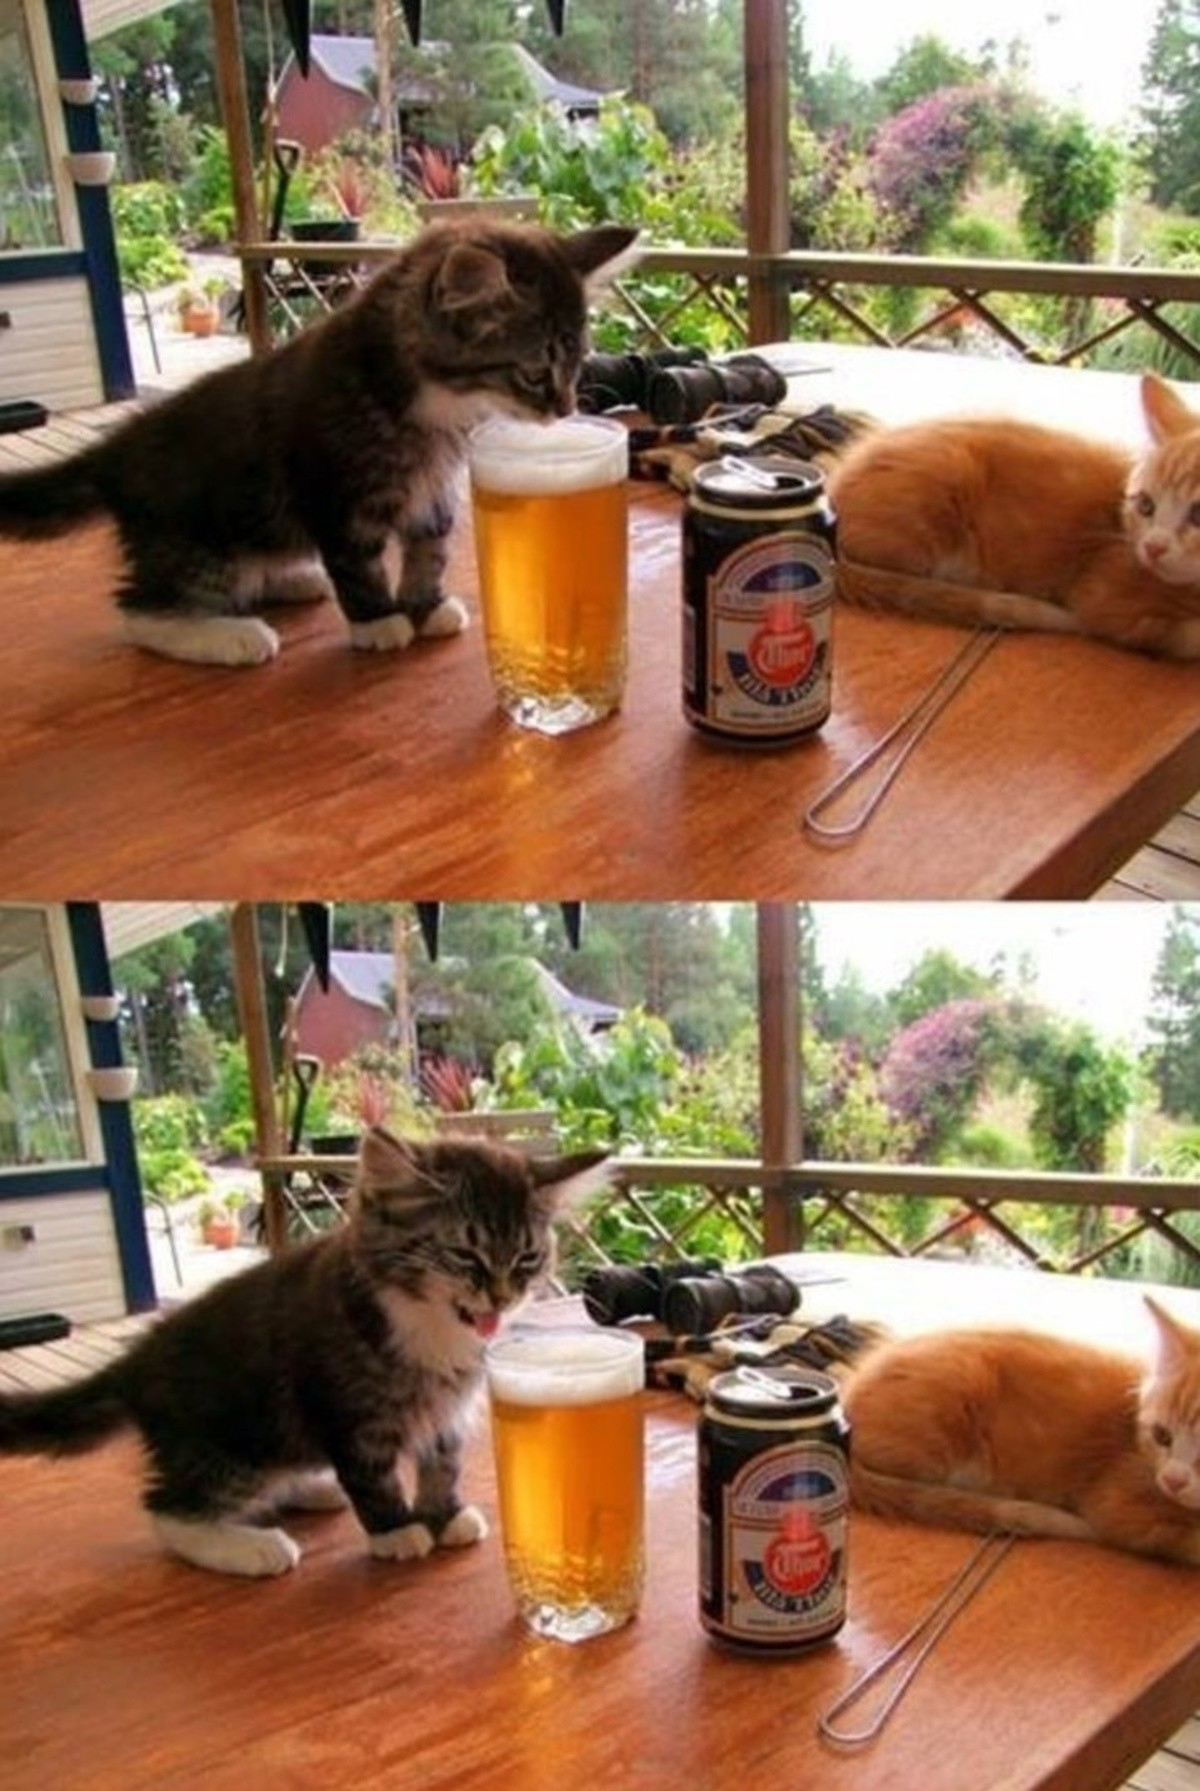 Cat no like. join list: QtStuff (404 subs)Mention History.. When your 12 years old and sneak one of your dad's beer from the fridge.